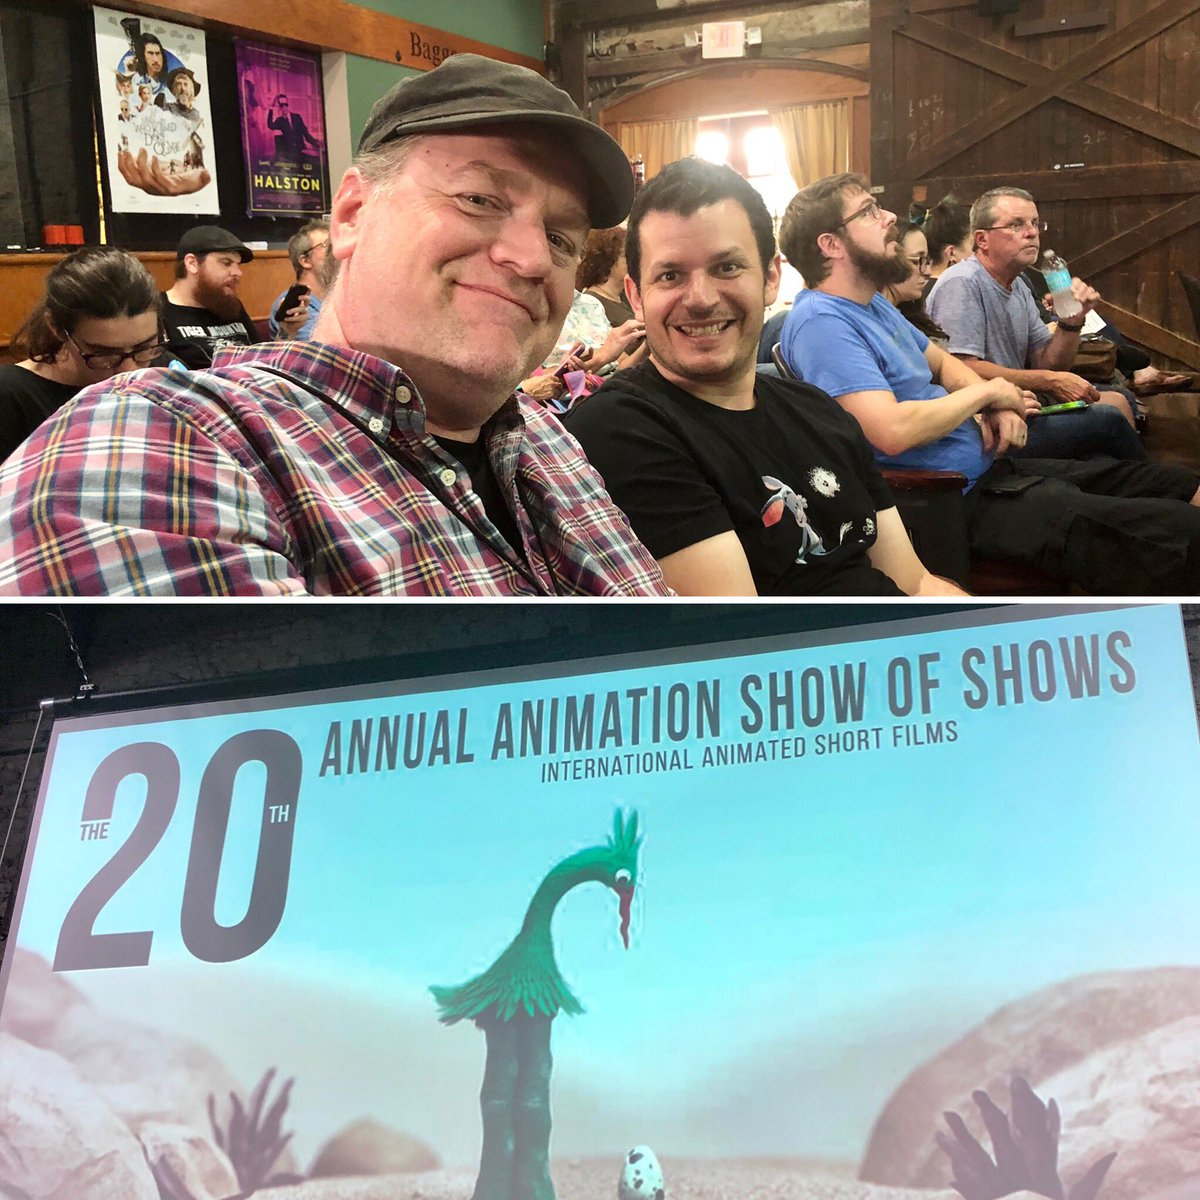 Excited to be at Show of Shows and Q&A w/Liron Topaz @floridaanimationfestival   #createtally #Tallahassee #TallahasseeArt #TallahasseeArtist  #IheARTtally #animation #summercamp #tallylocal #tallahasseecreates #cityoftallahassee #tlh  #shoplocaltally #visittallahassee #tally